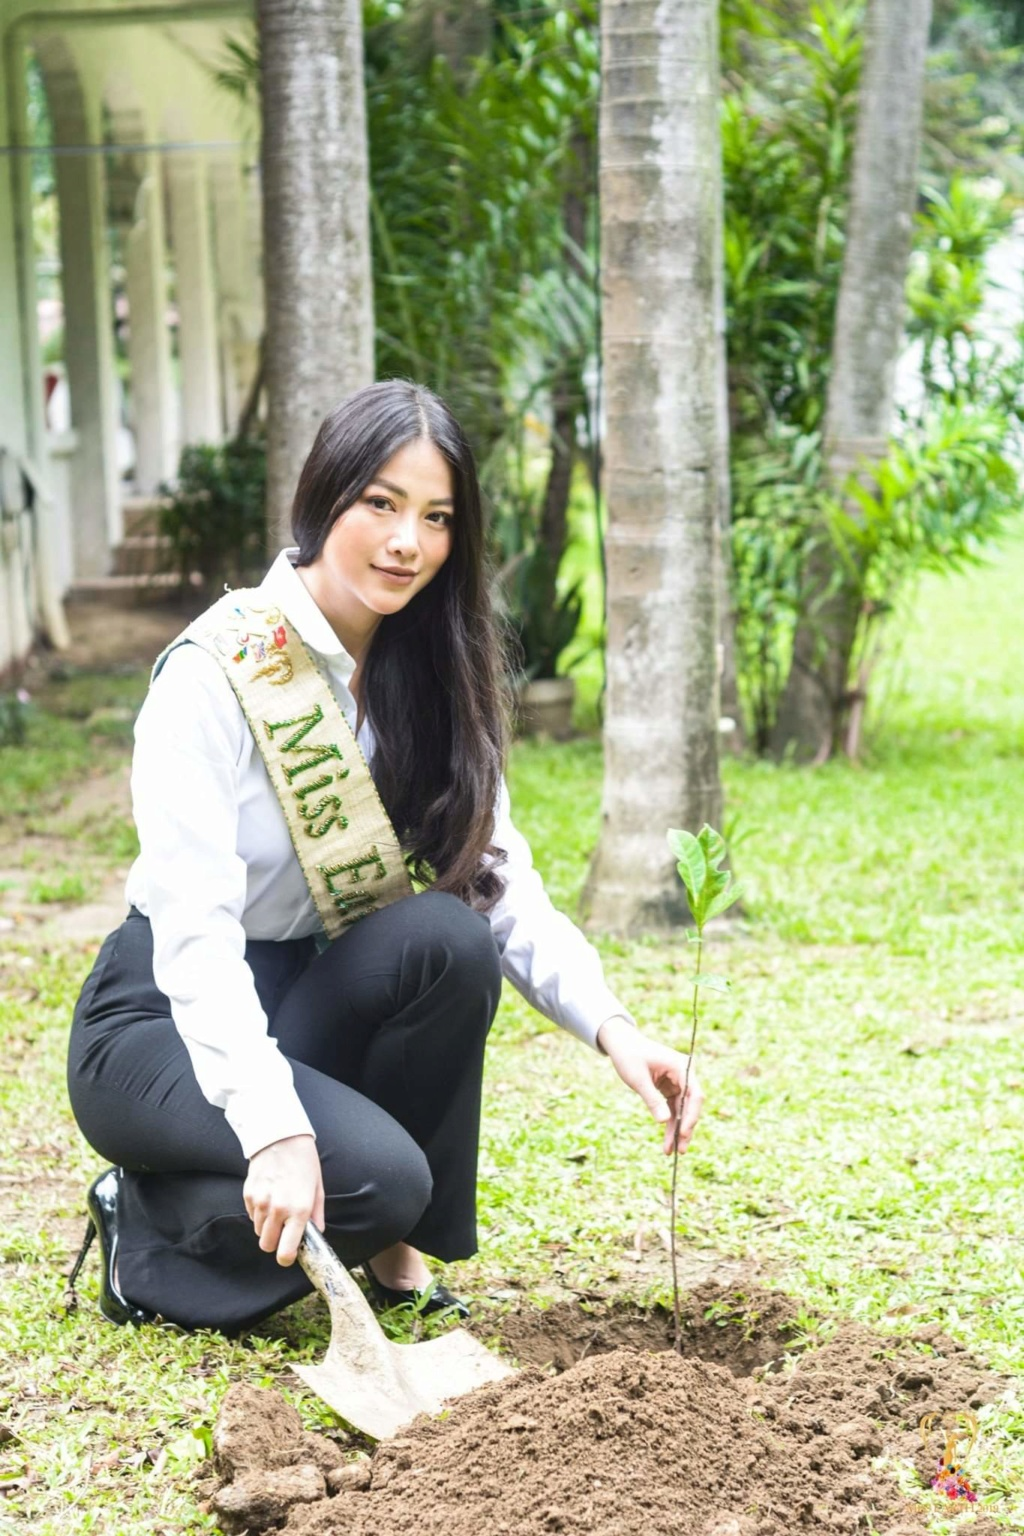 ** Official Thread of Miss Earth 2018-Phuong Khanh Nguyen from VIETNAM** - Page 7 Fb_10908